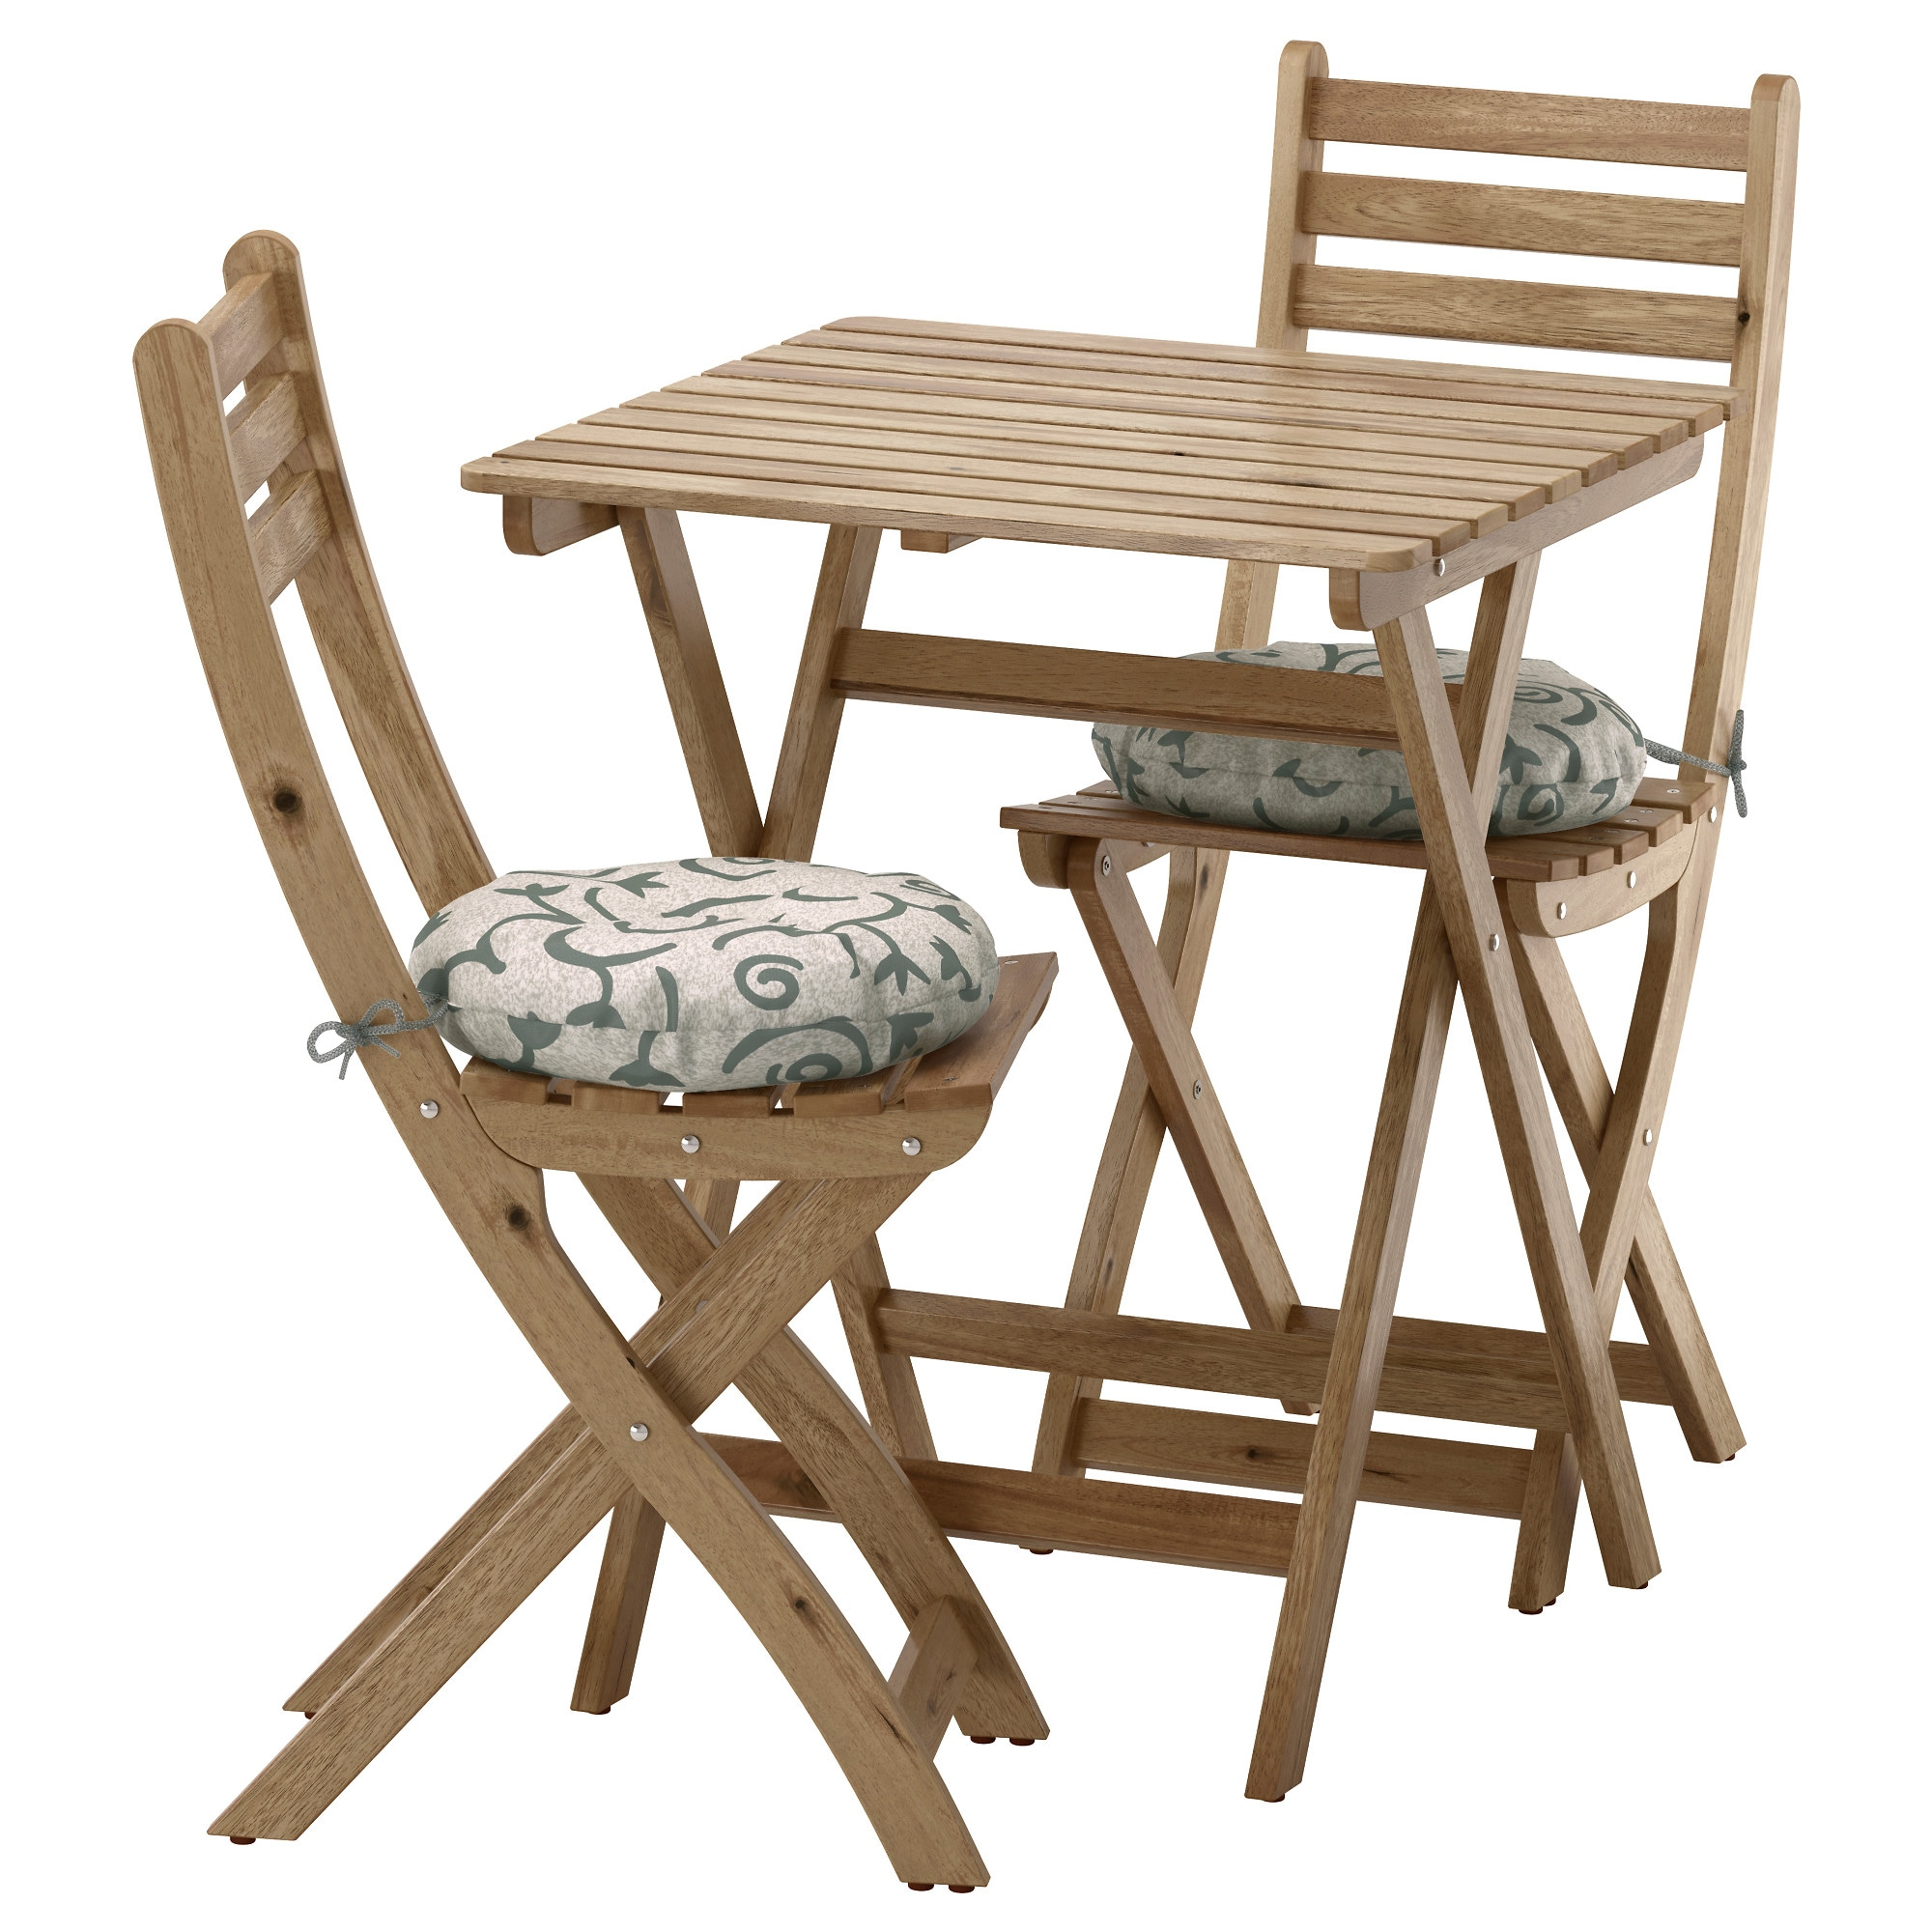 Outdoor dining furniture Dining chairs & Dining sets IKEA